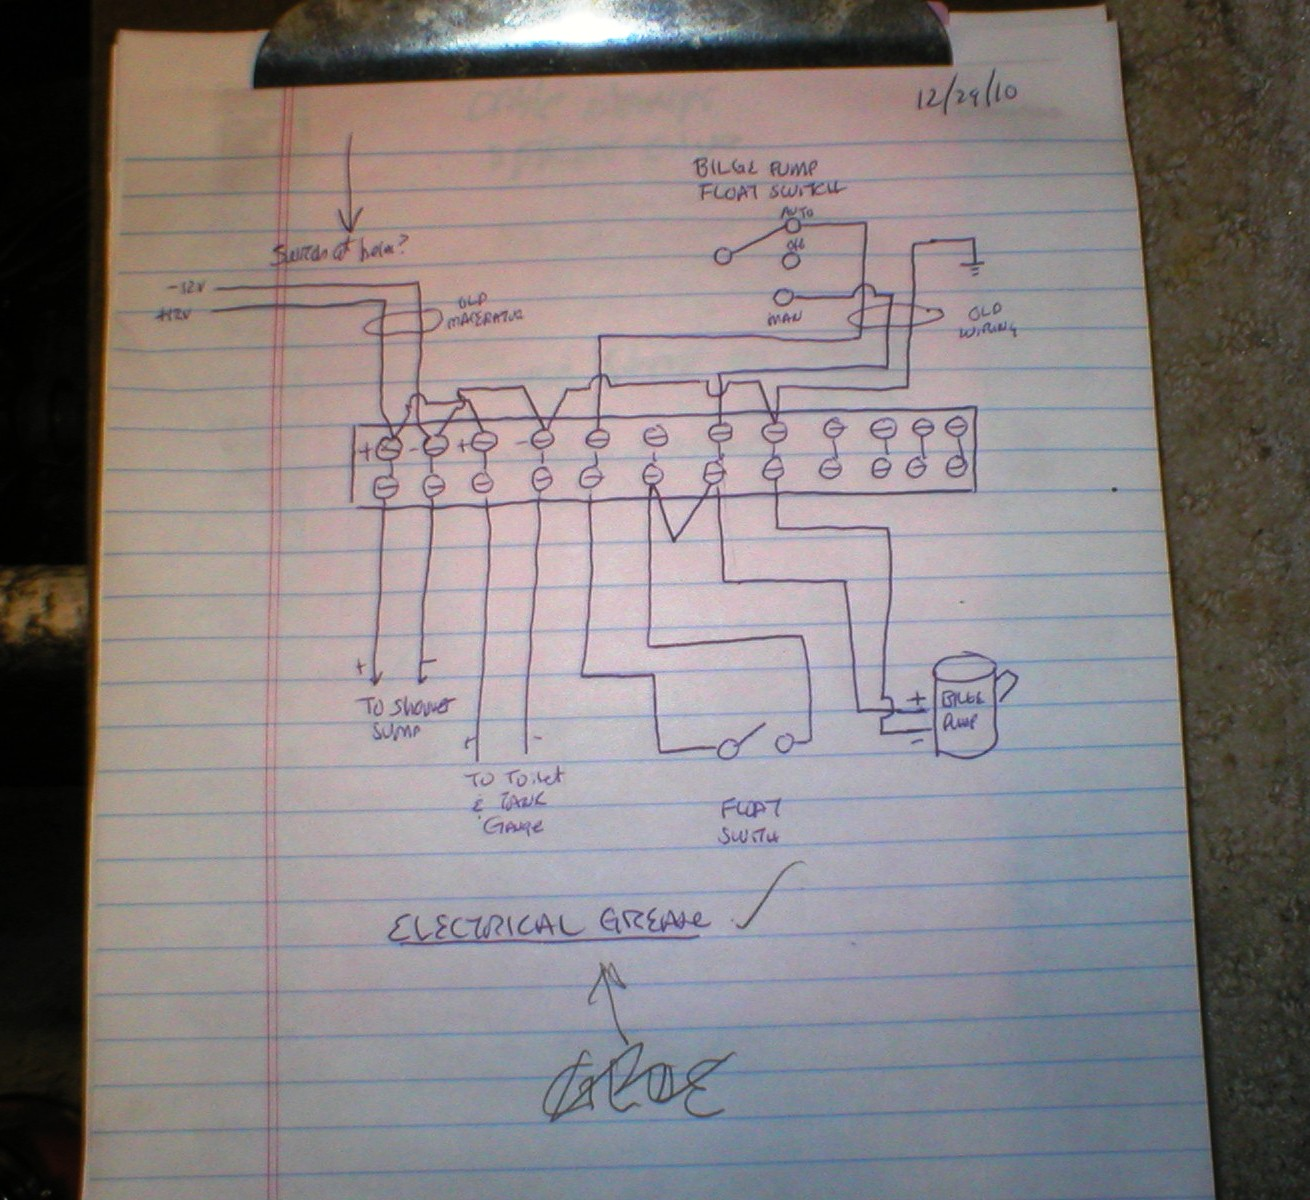 johnson float switch wiring diagram wiring diagram toolbox johnson bilge pump float switch wiring diagram johnson pump wiring diagram [ 1310 x 1200 Pixel ]